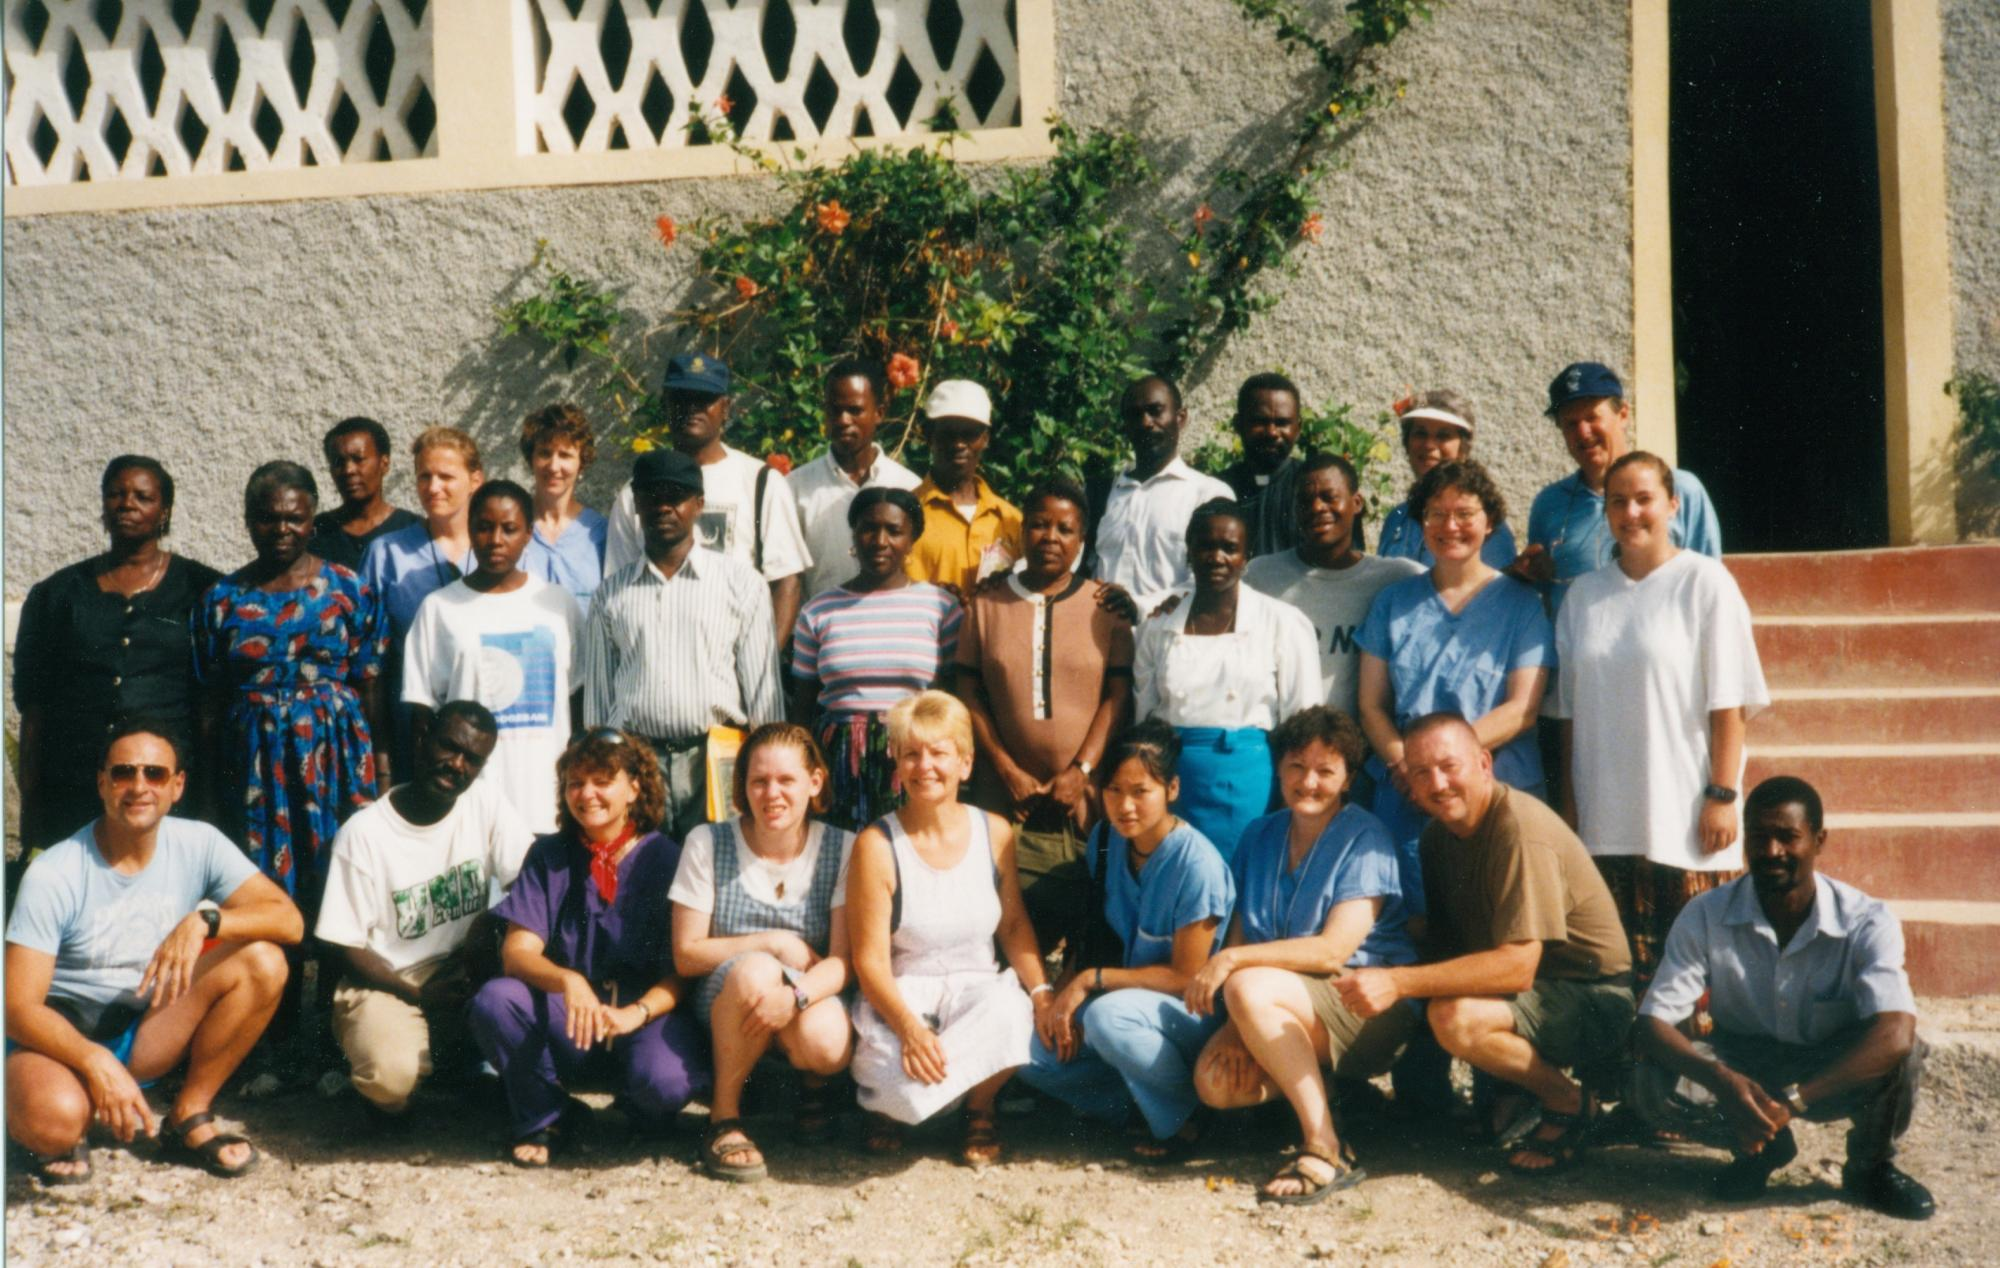 Medical_Team_1998_Thiotte_Maureen_image11.jpg